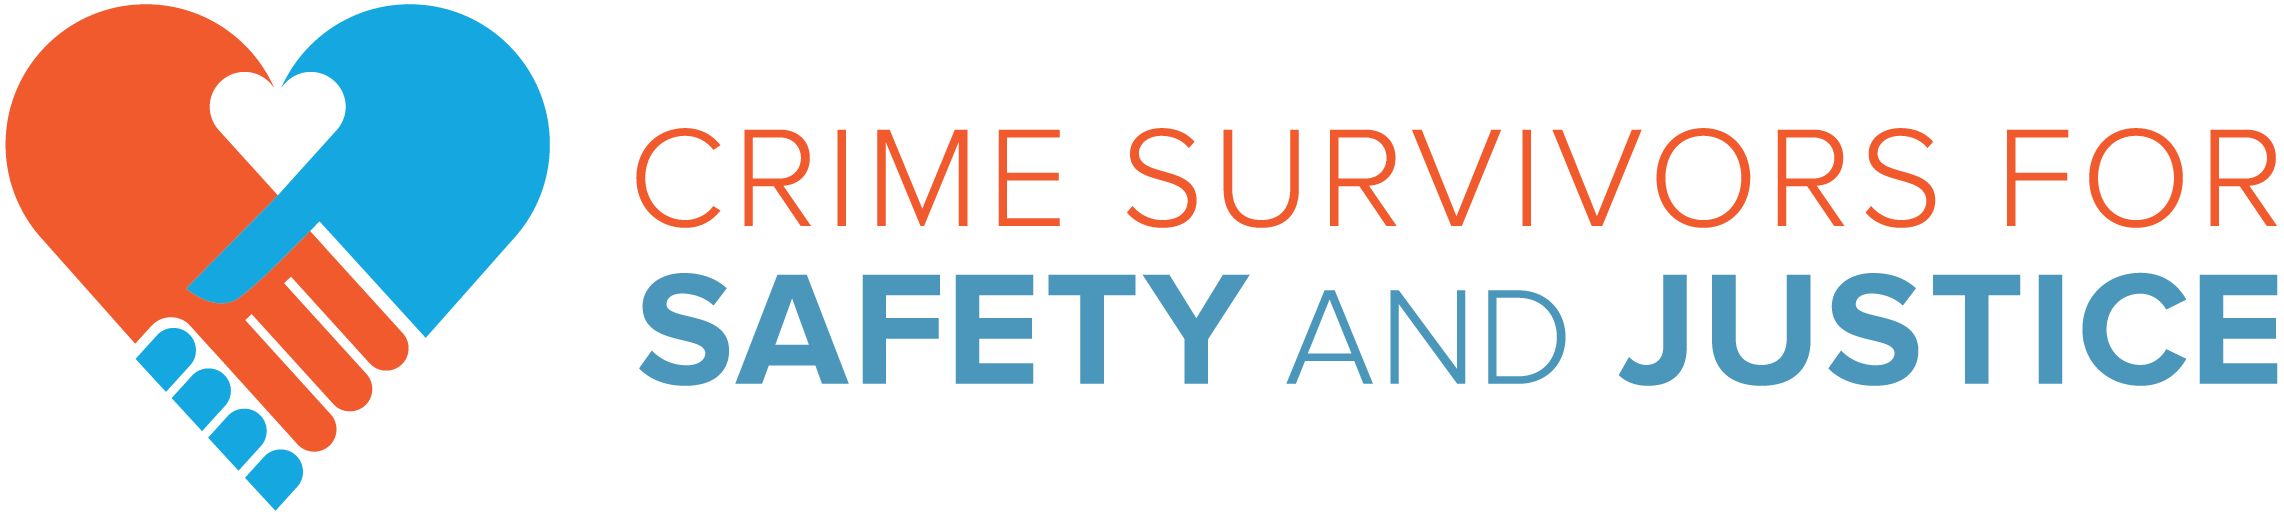 Crime Survivors for Safety and Justice